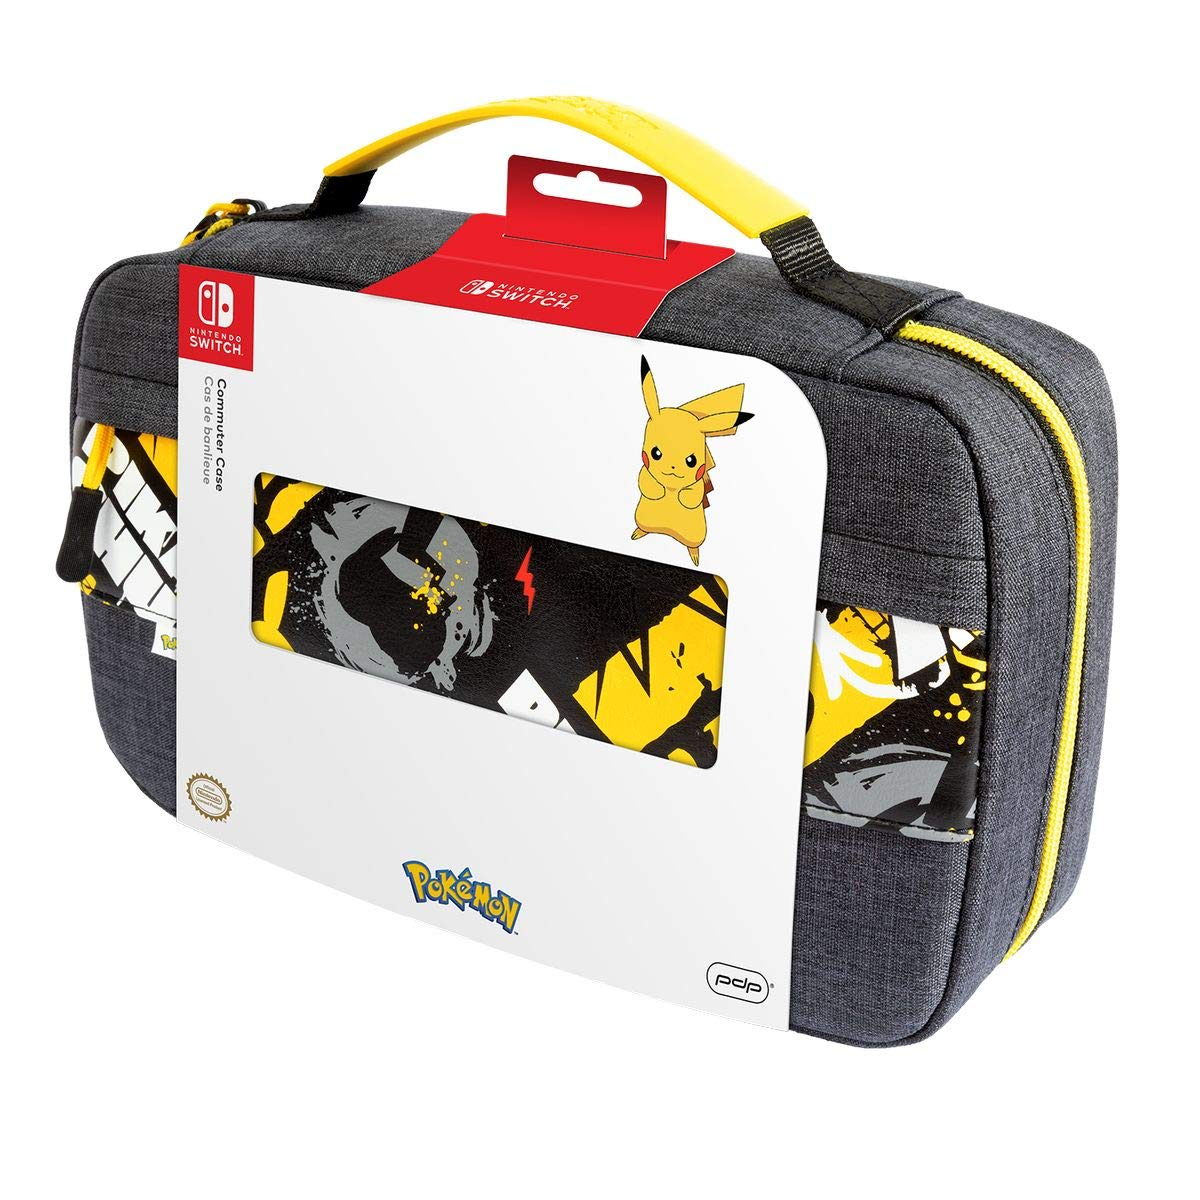 Shipping included PDP Gaming Pokemon Pikachu Commuter Case 14 G Console For To Up Super sale period limited